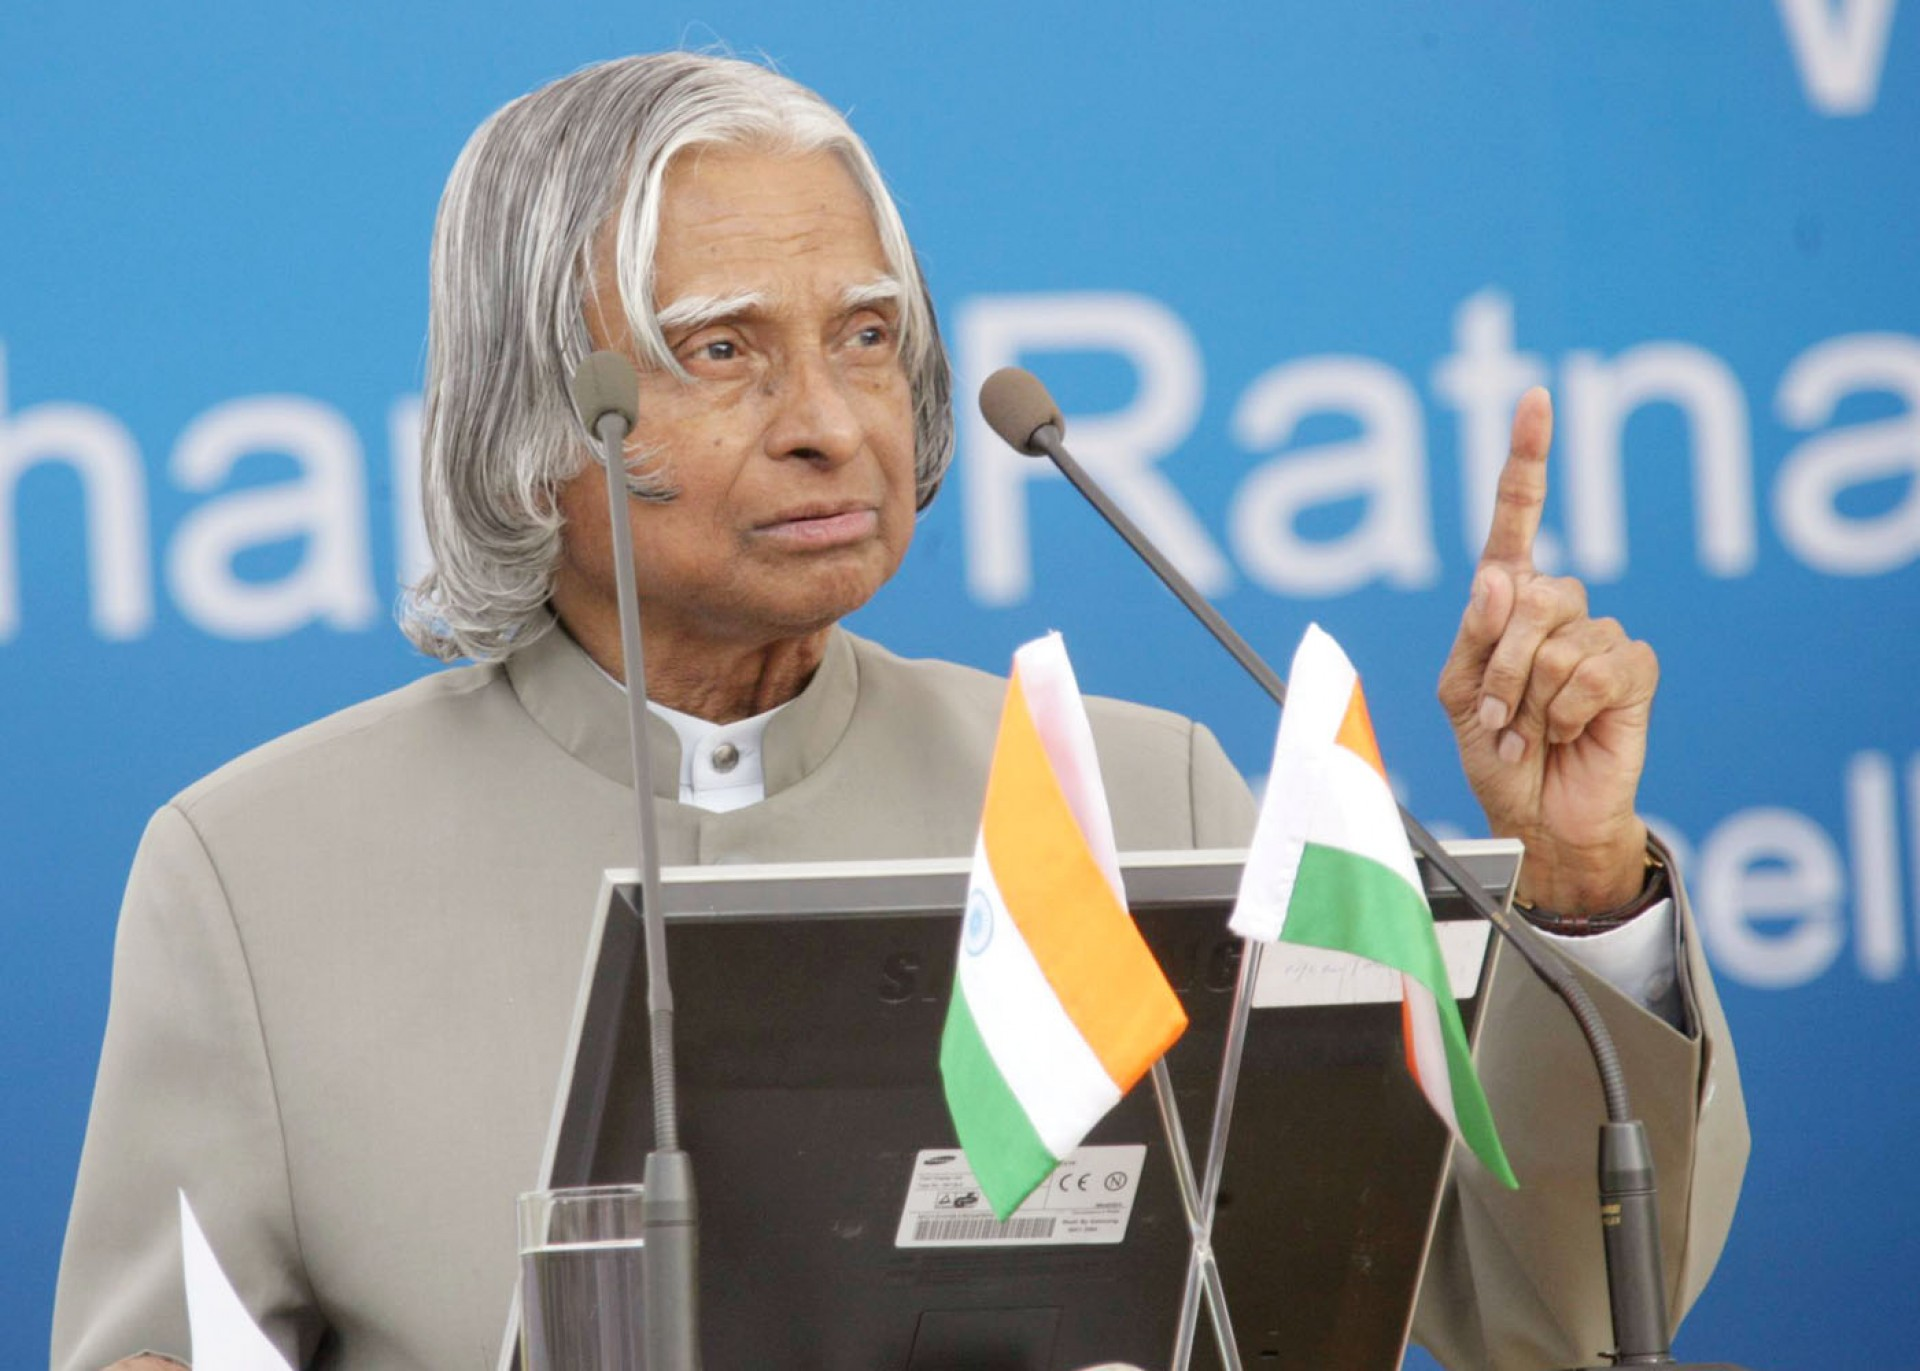 003 Essay Example Abdul Kalam My Inspiration P Exceptional In English 400 Words Hindi 1920